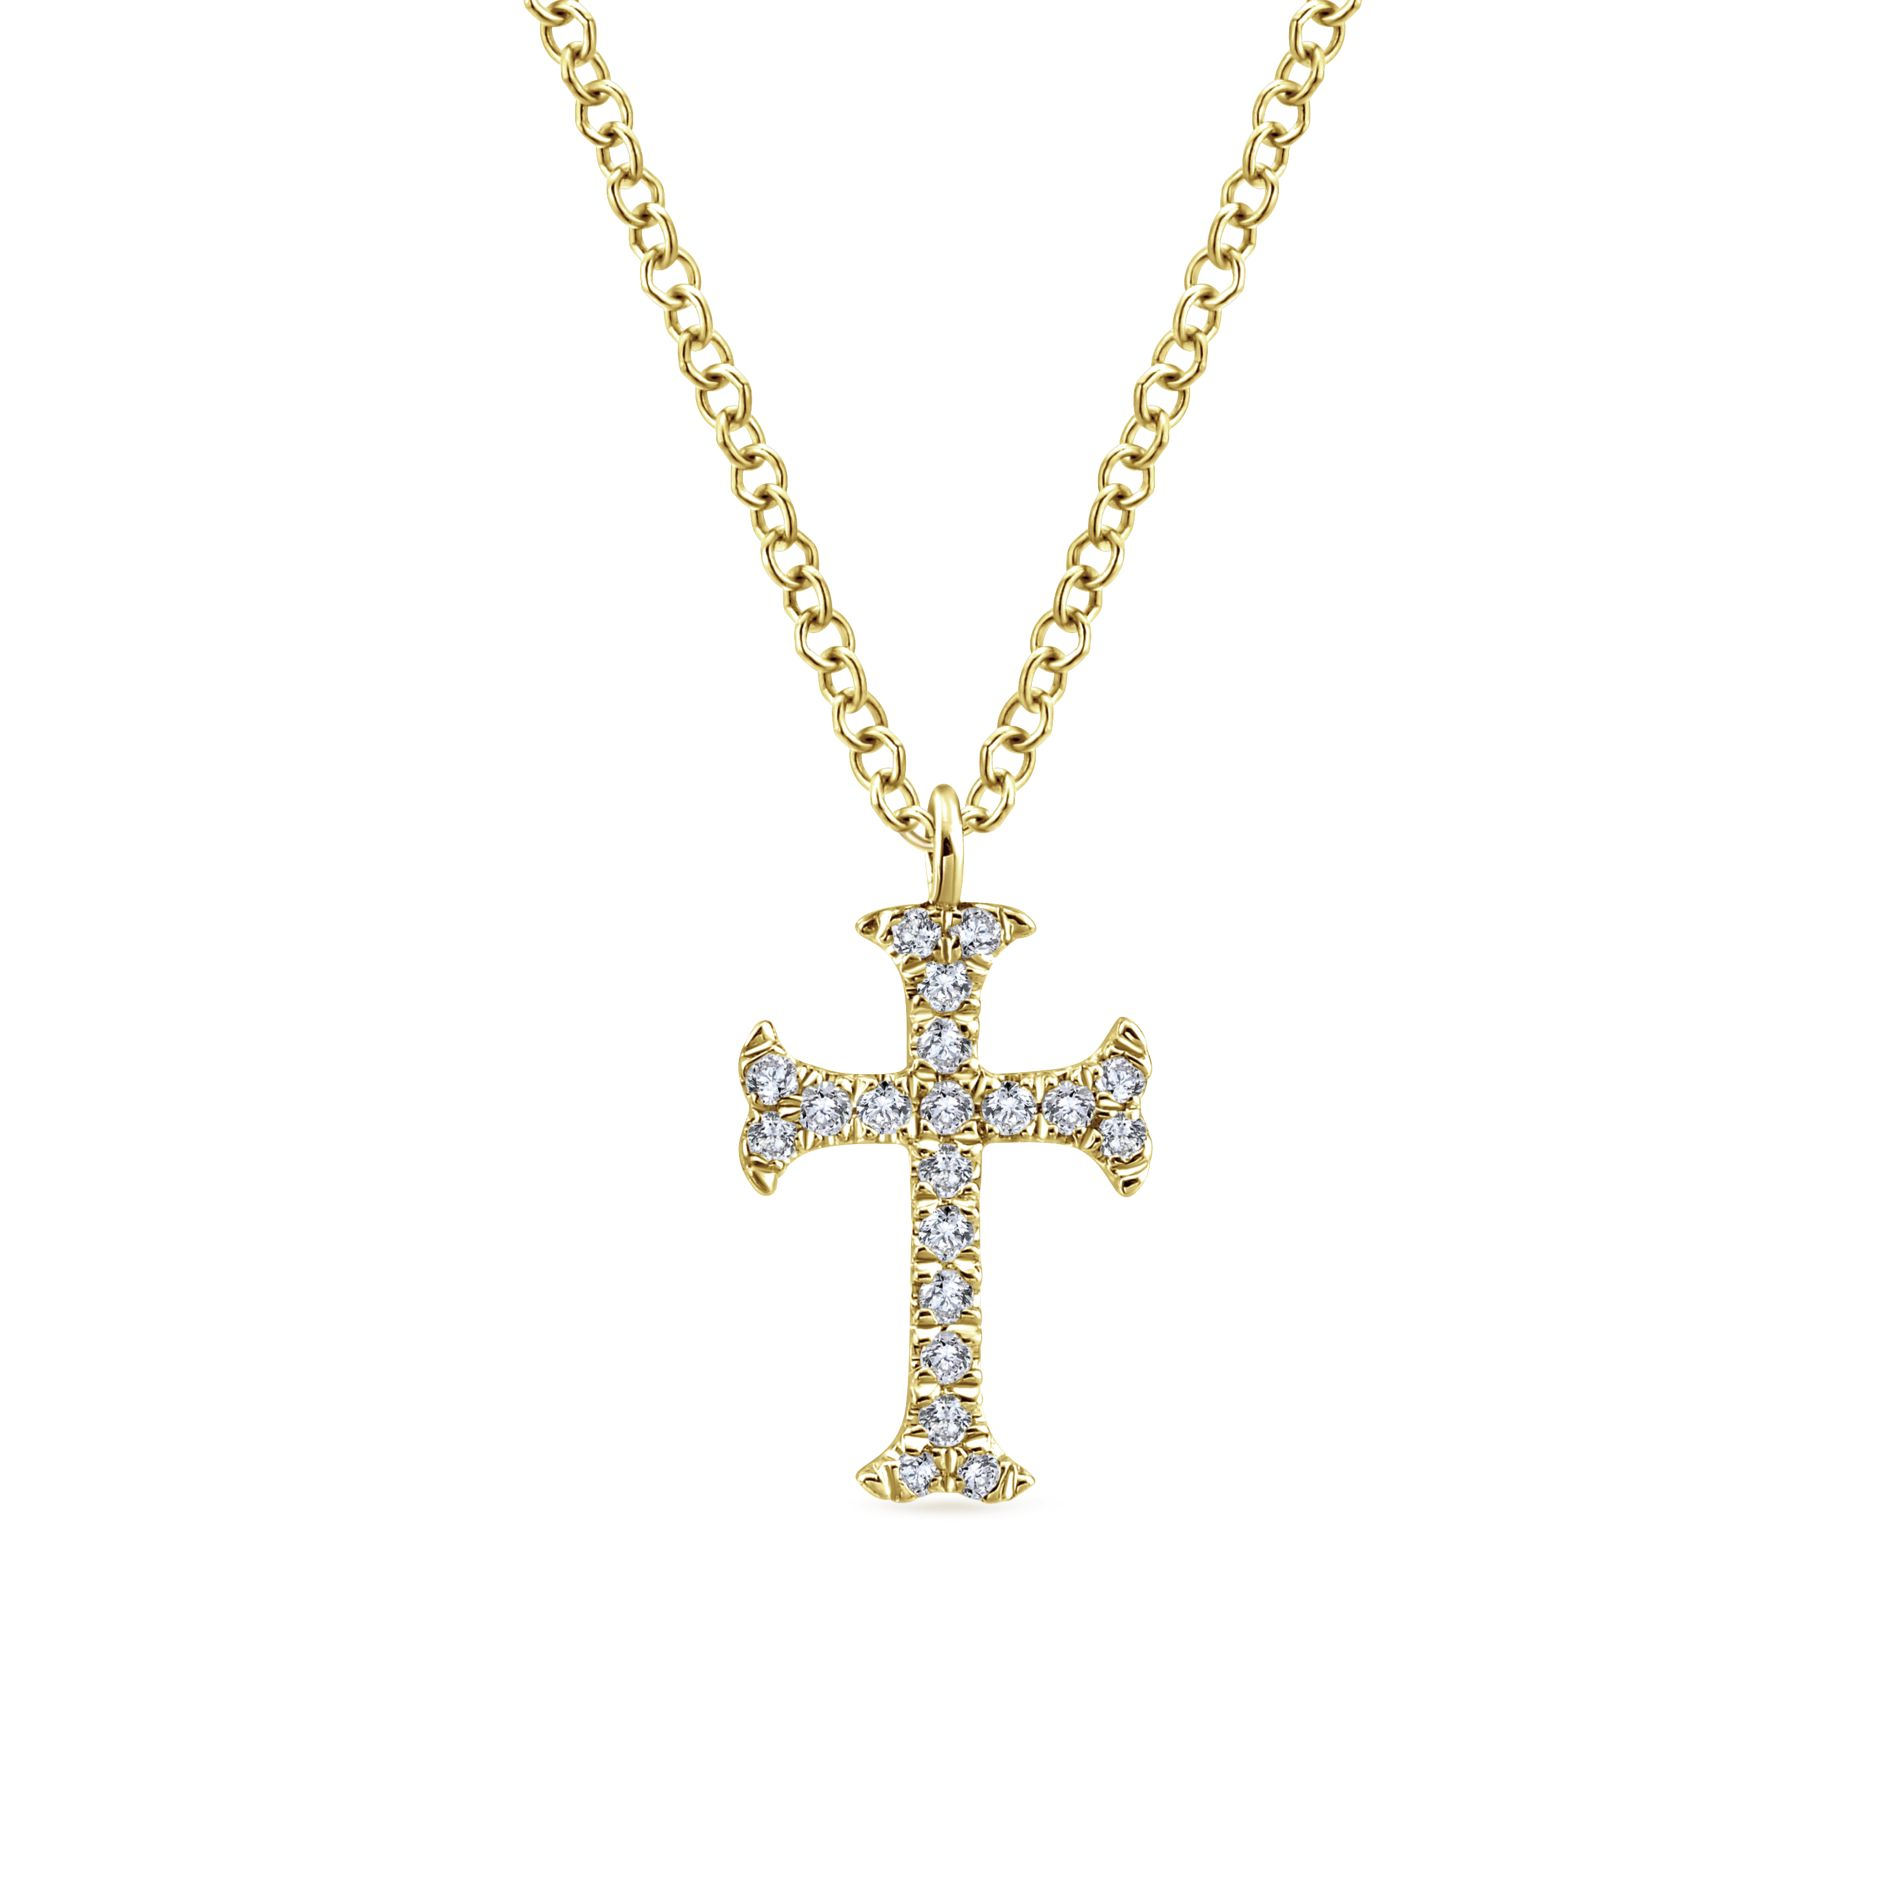 Necklaces - YELLOW GOLD CROSS DIAMOND NECKLACE